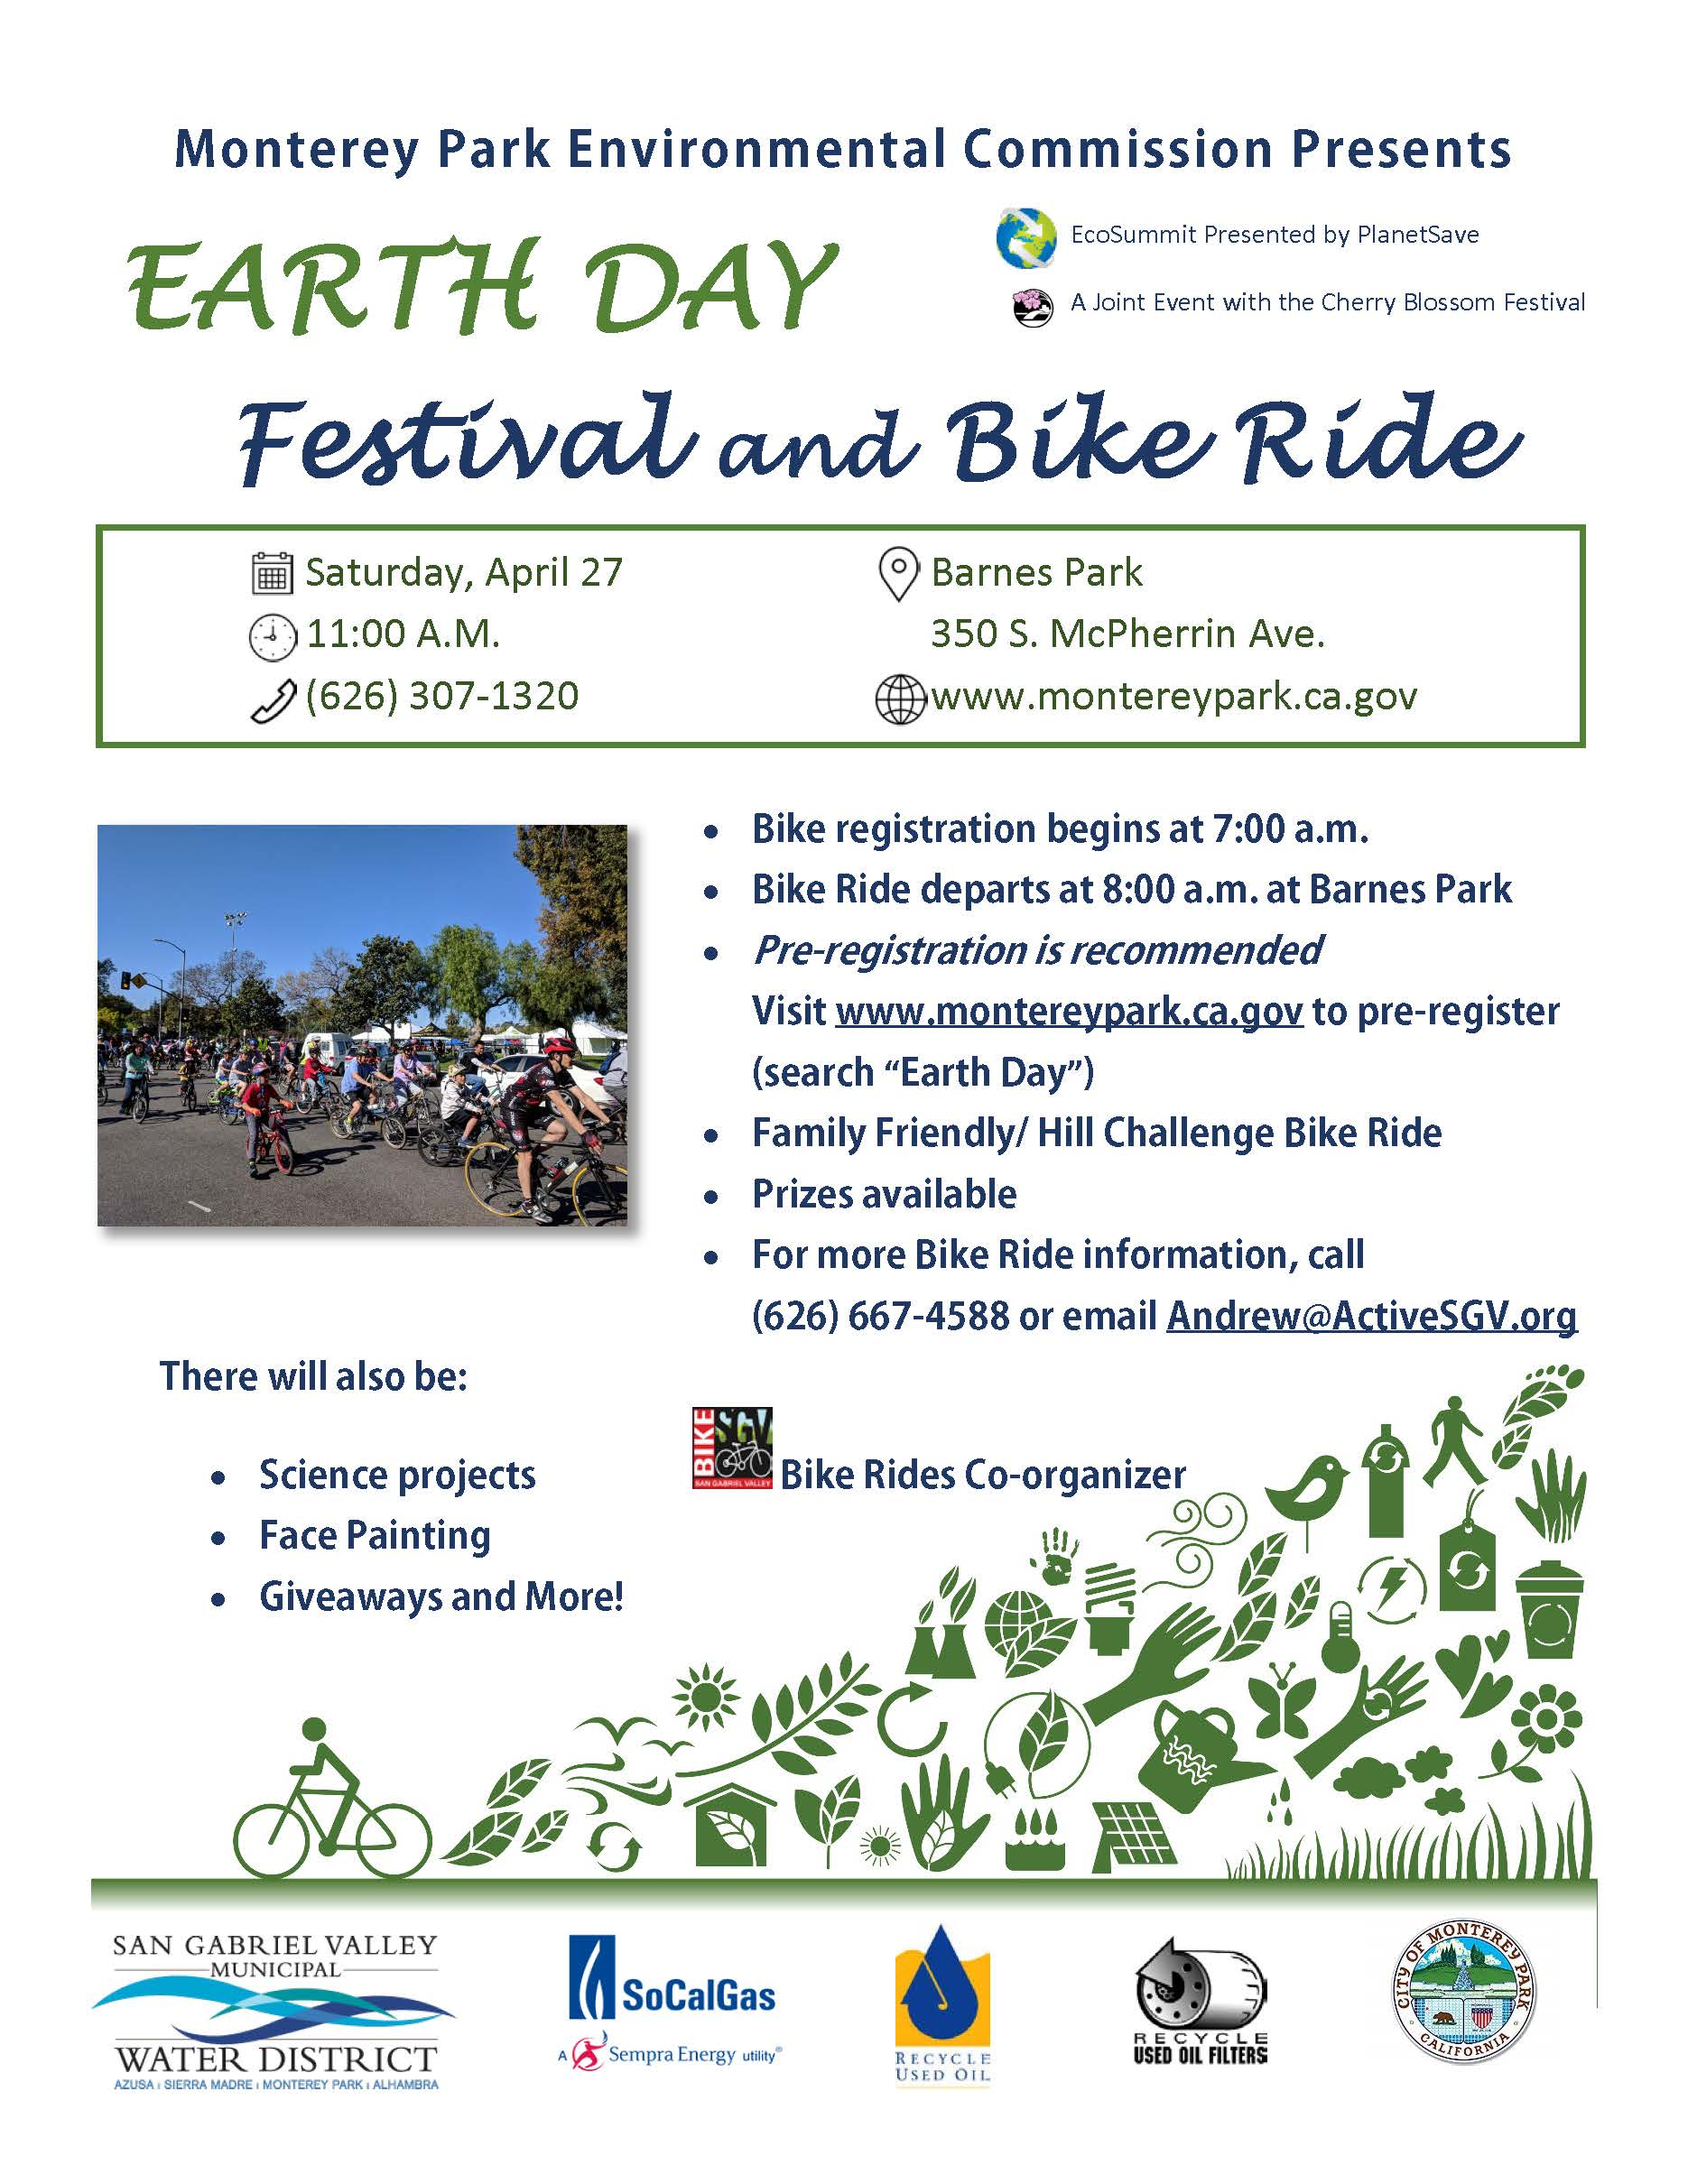 Monterey Park Cherry Blossom Festival 2020 Earth Day Festival | Monterey Park, CA   Official Website